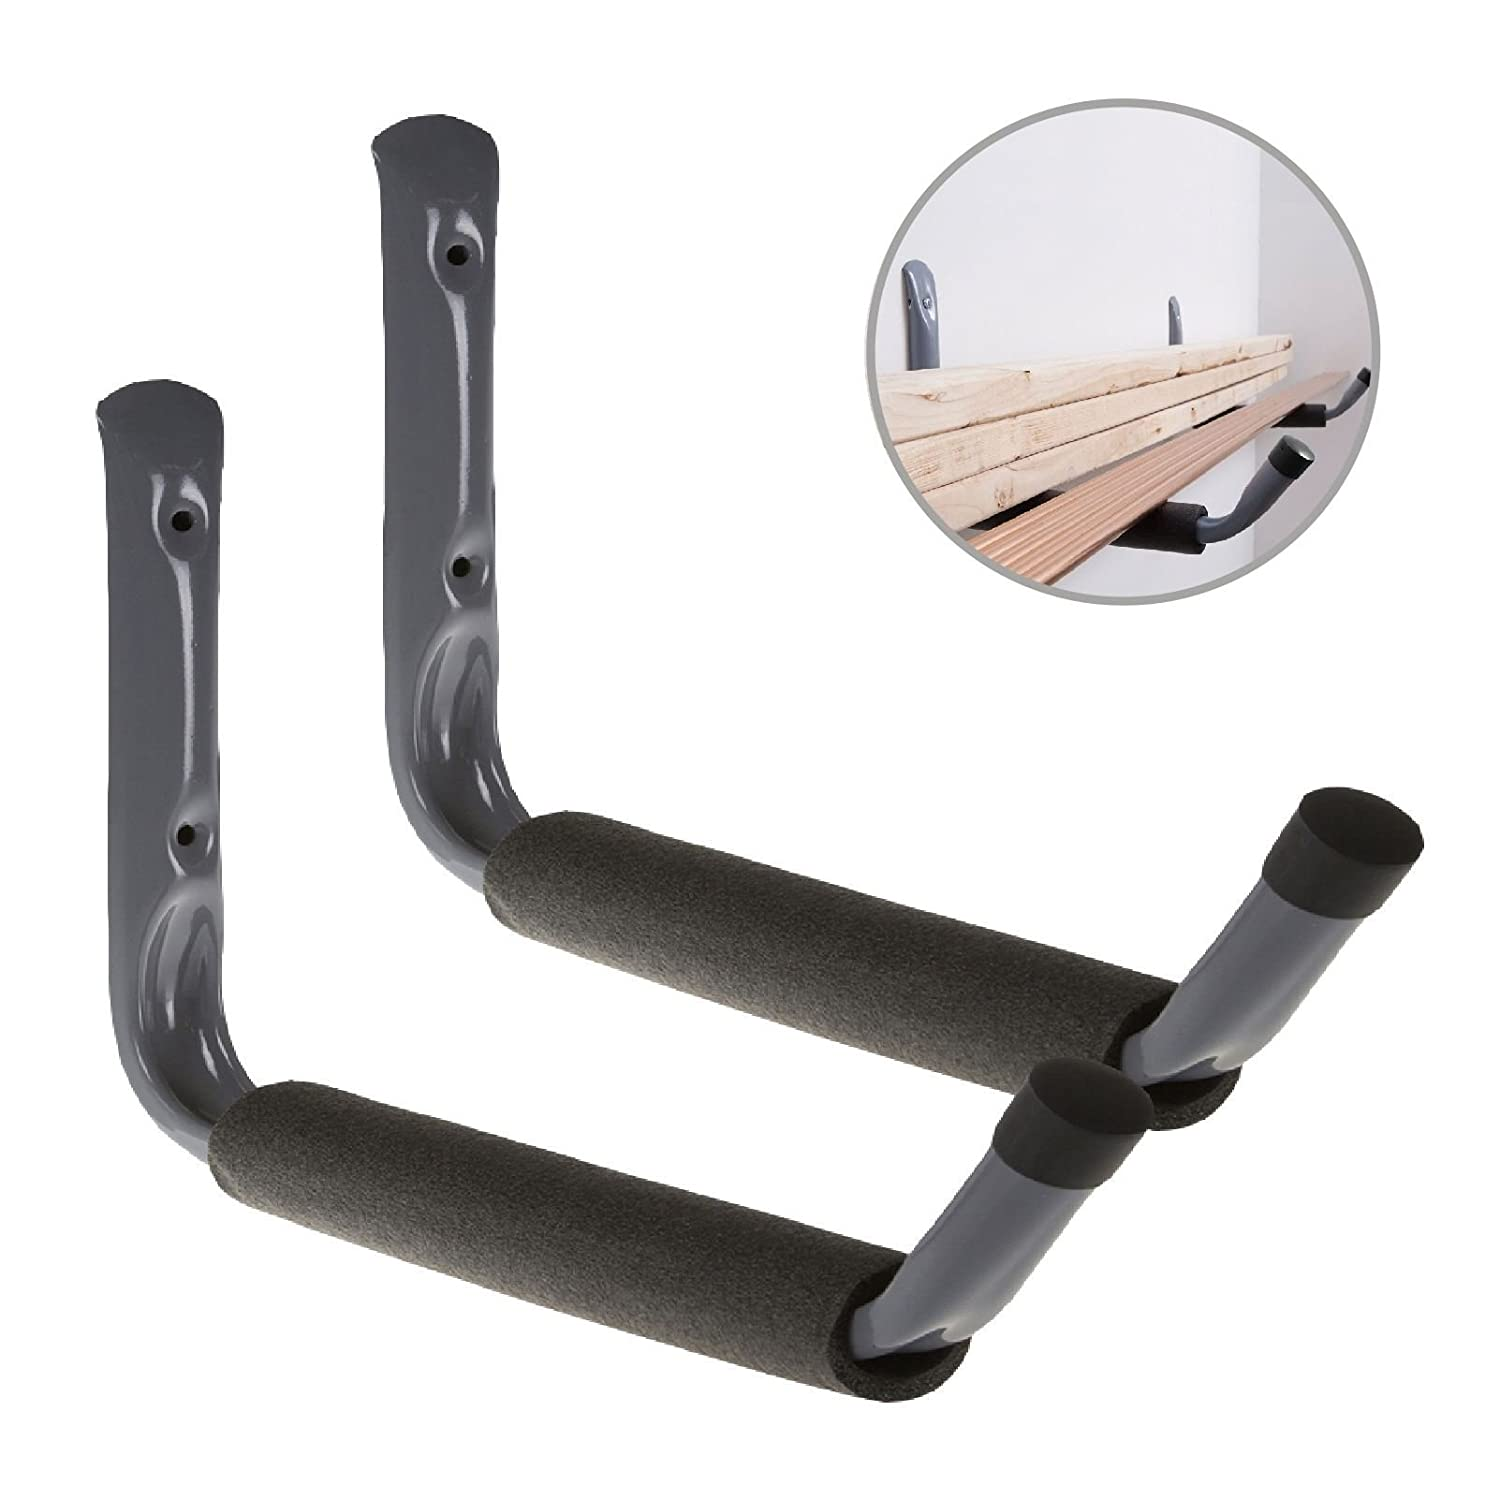 2 x Giant Heavy Duty Padded Storage Hooks 400mm Wall Mounted, Ladders Bikes Garages H.Smart